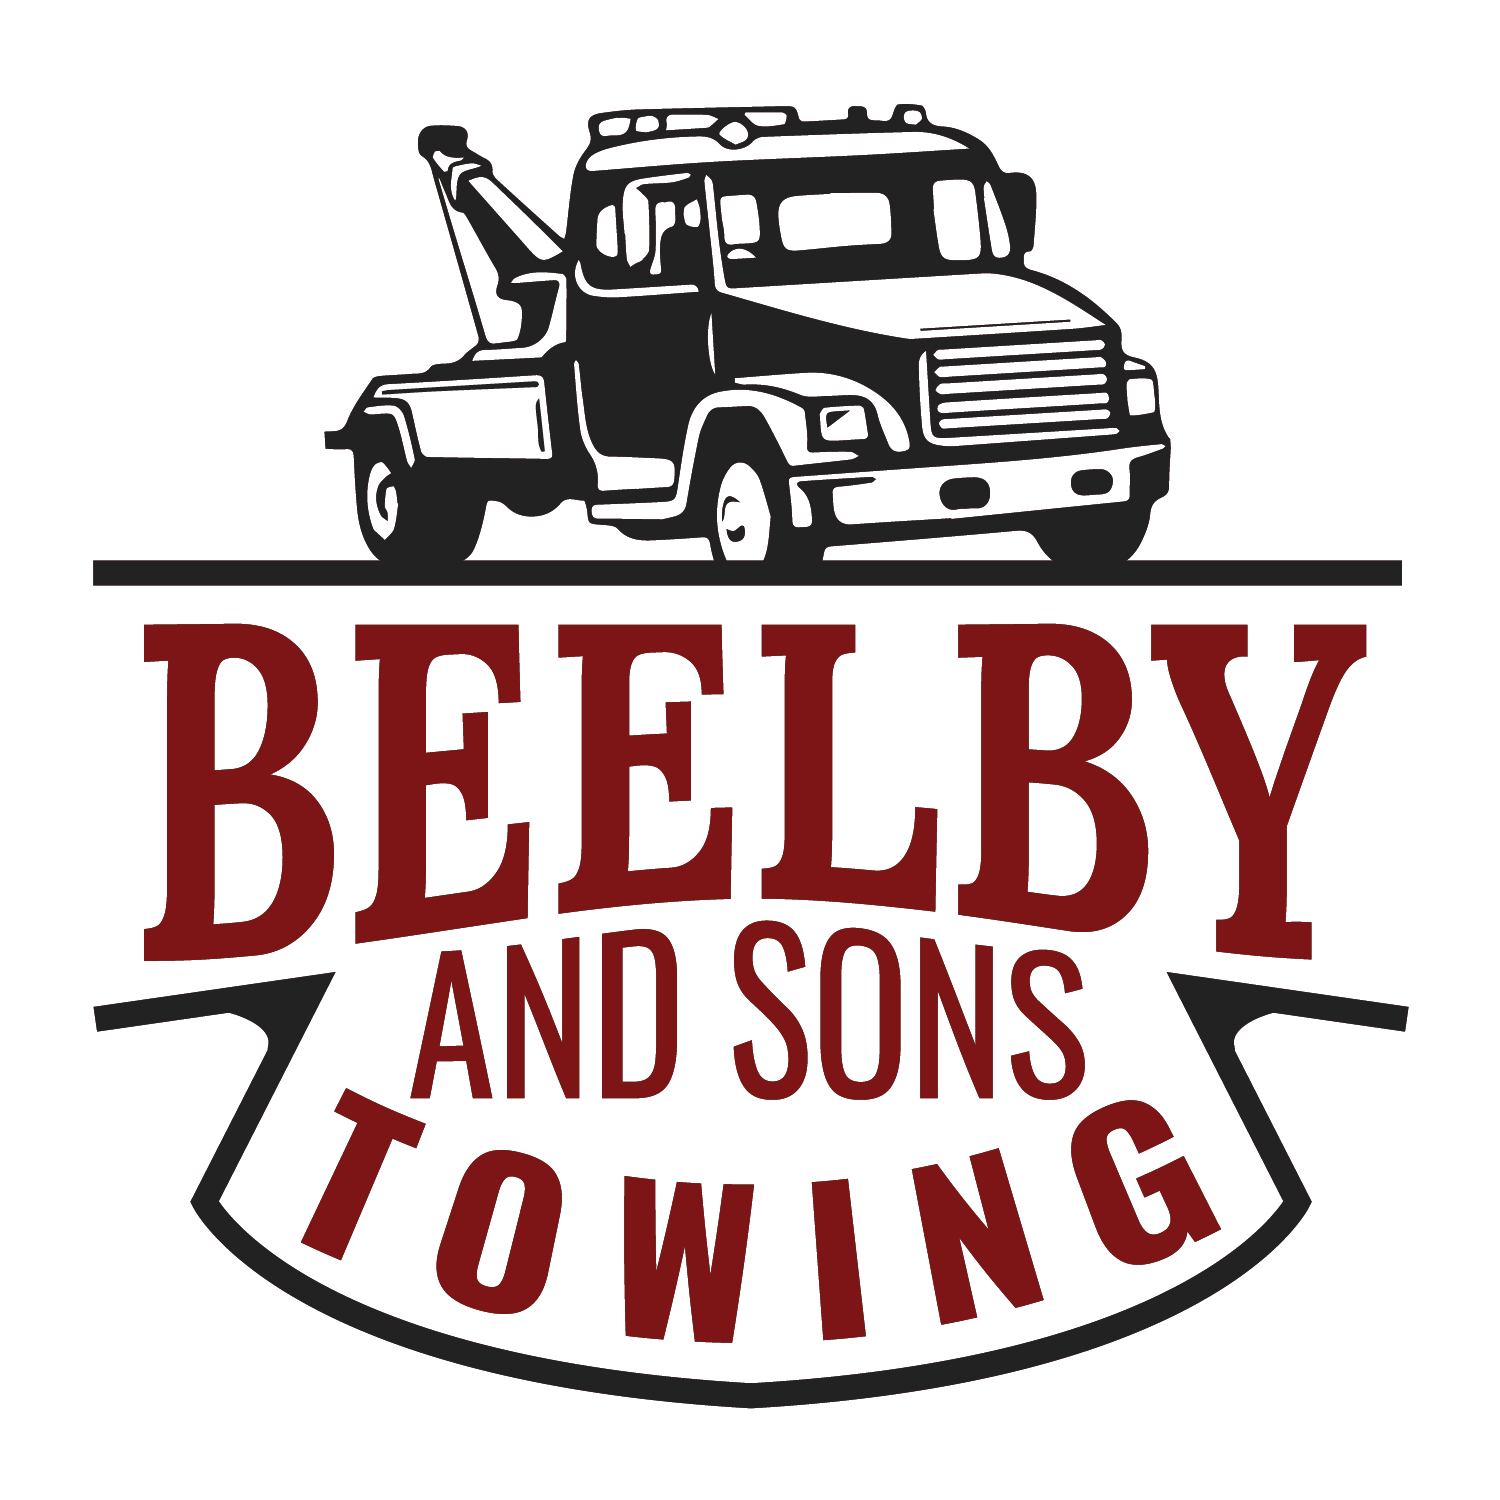 Beelby and Sons Towing